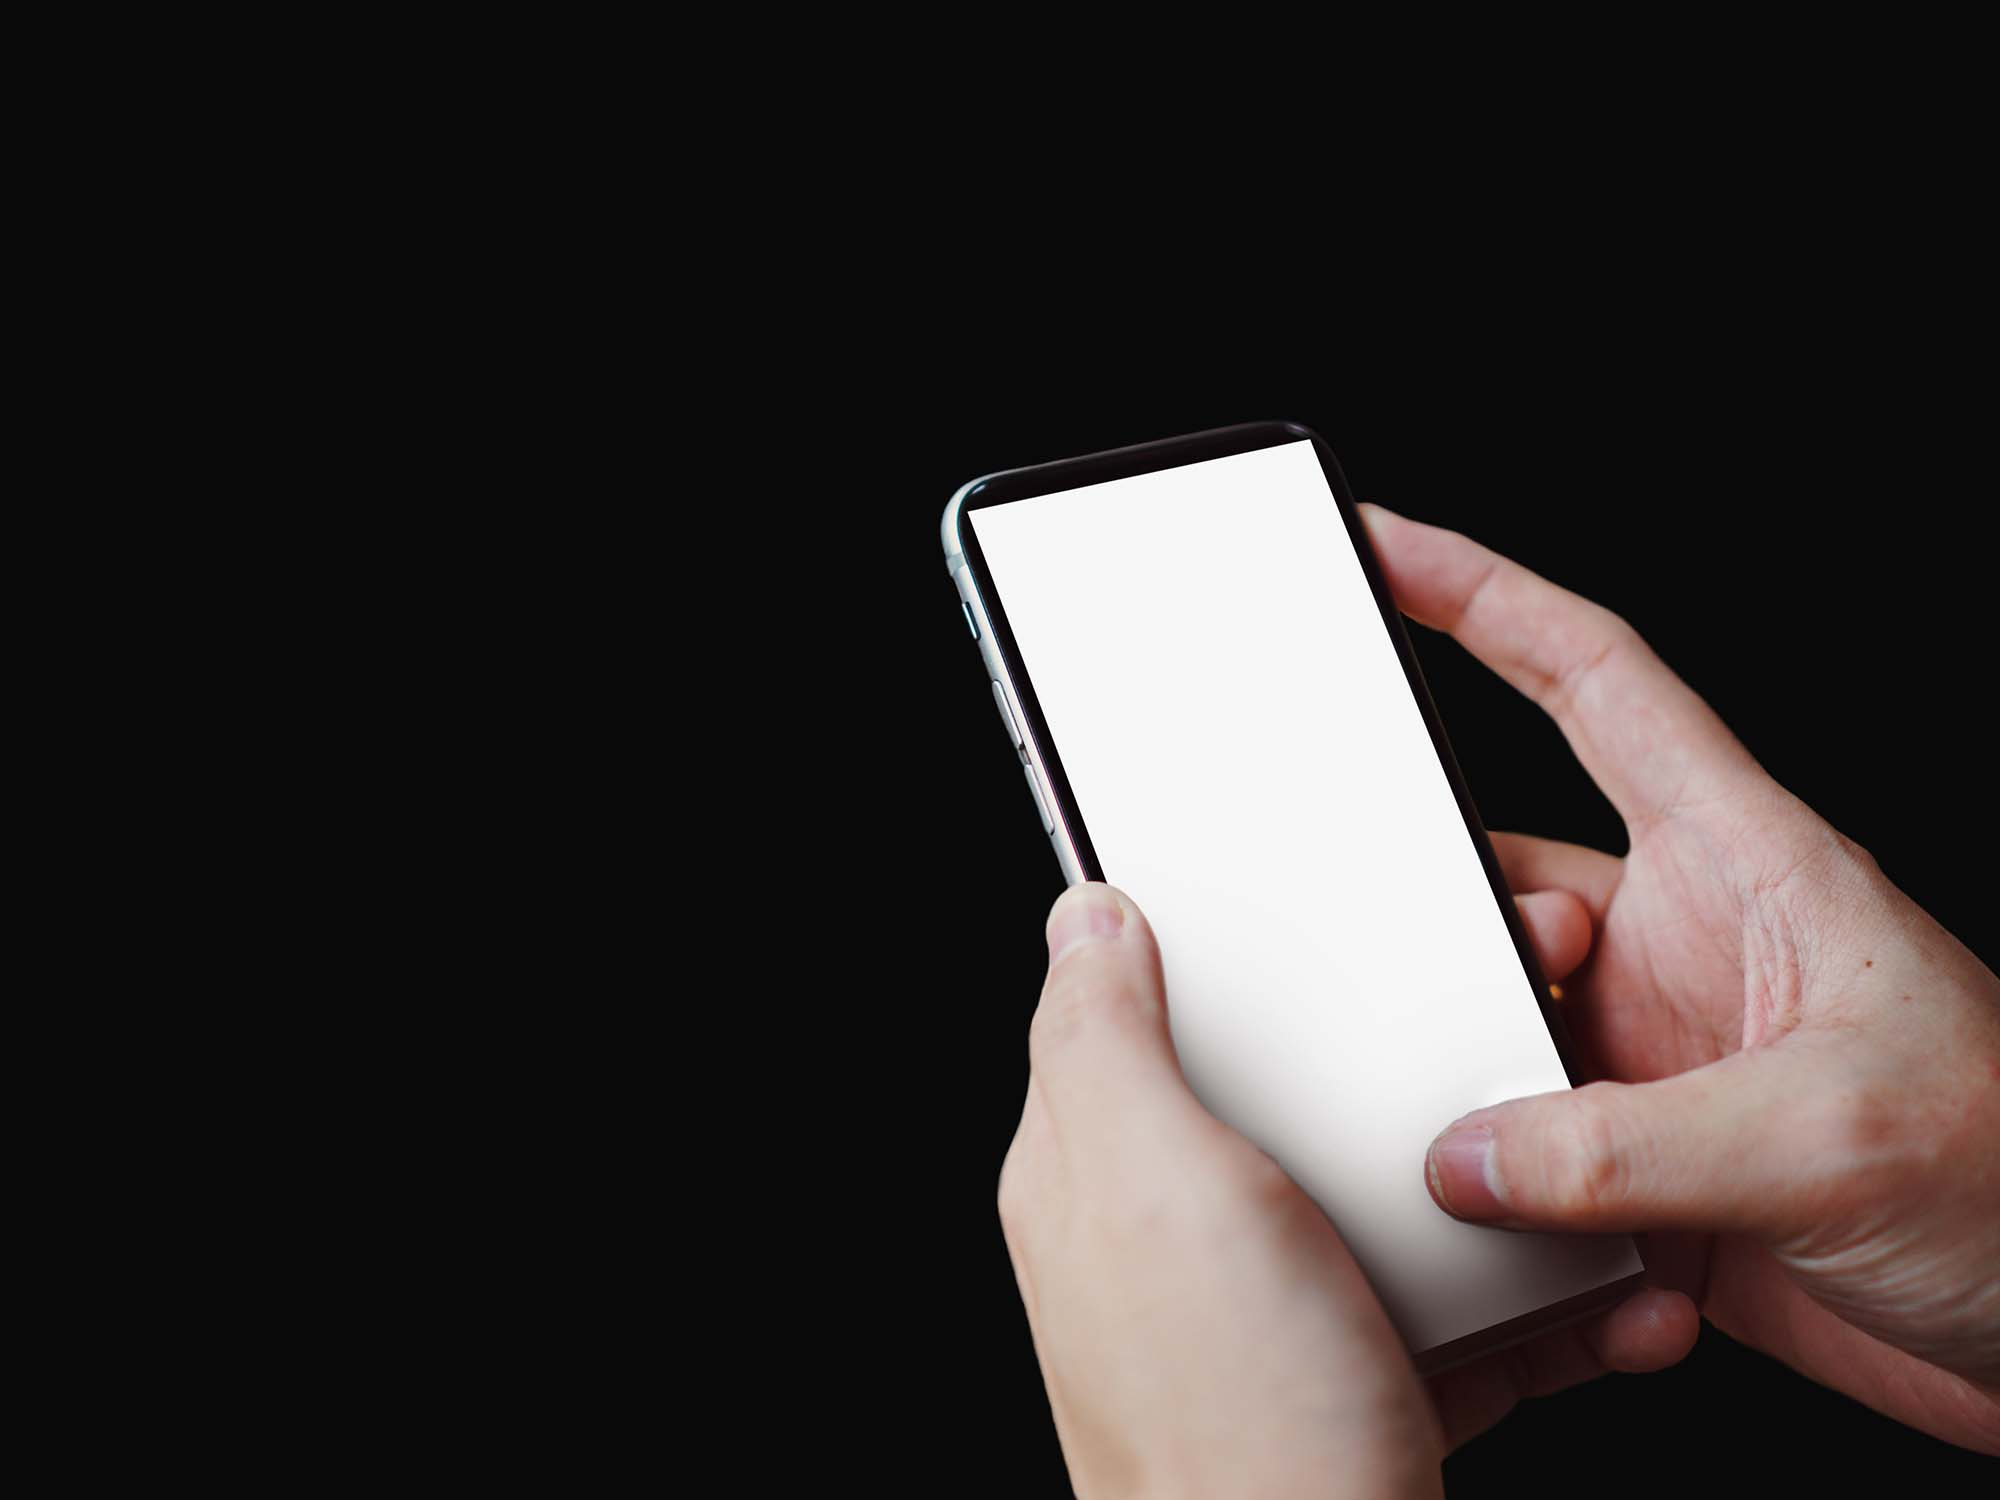 iPhone X Held by a Pair of Hands Mockup 2